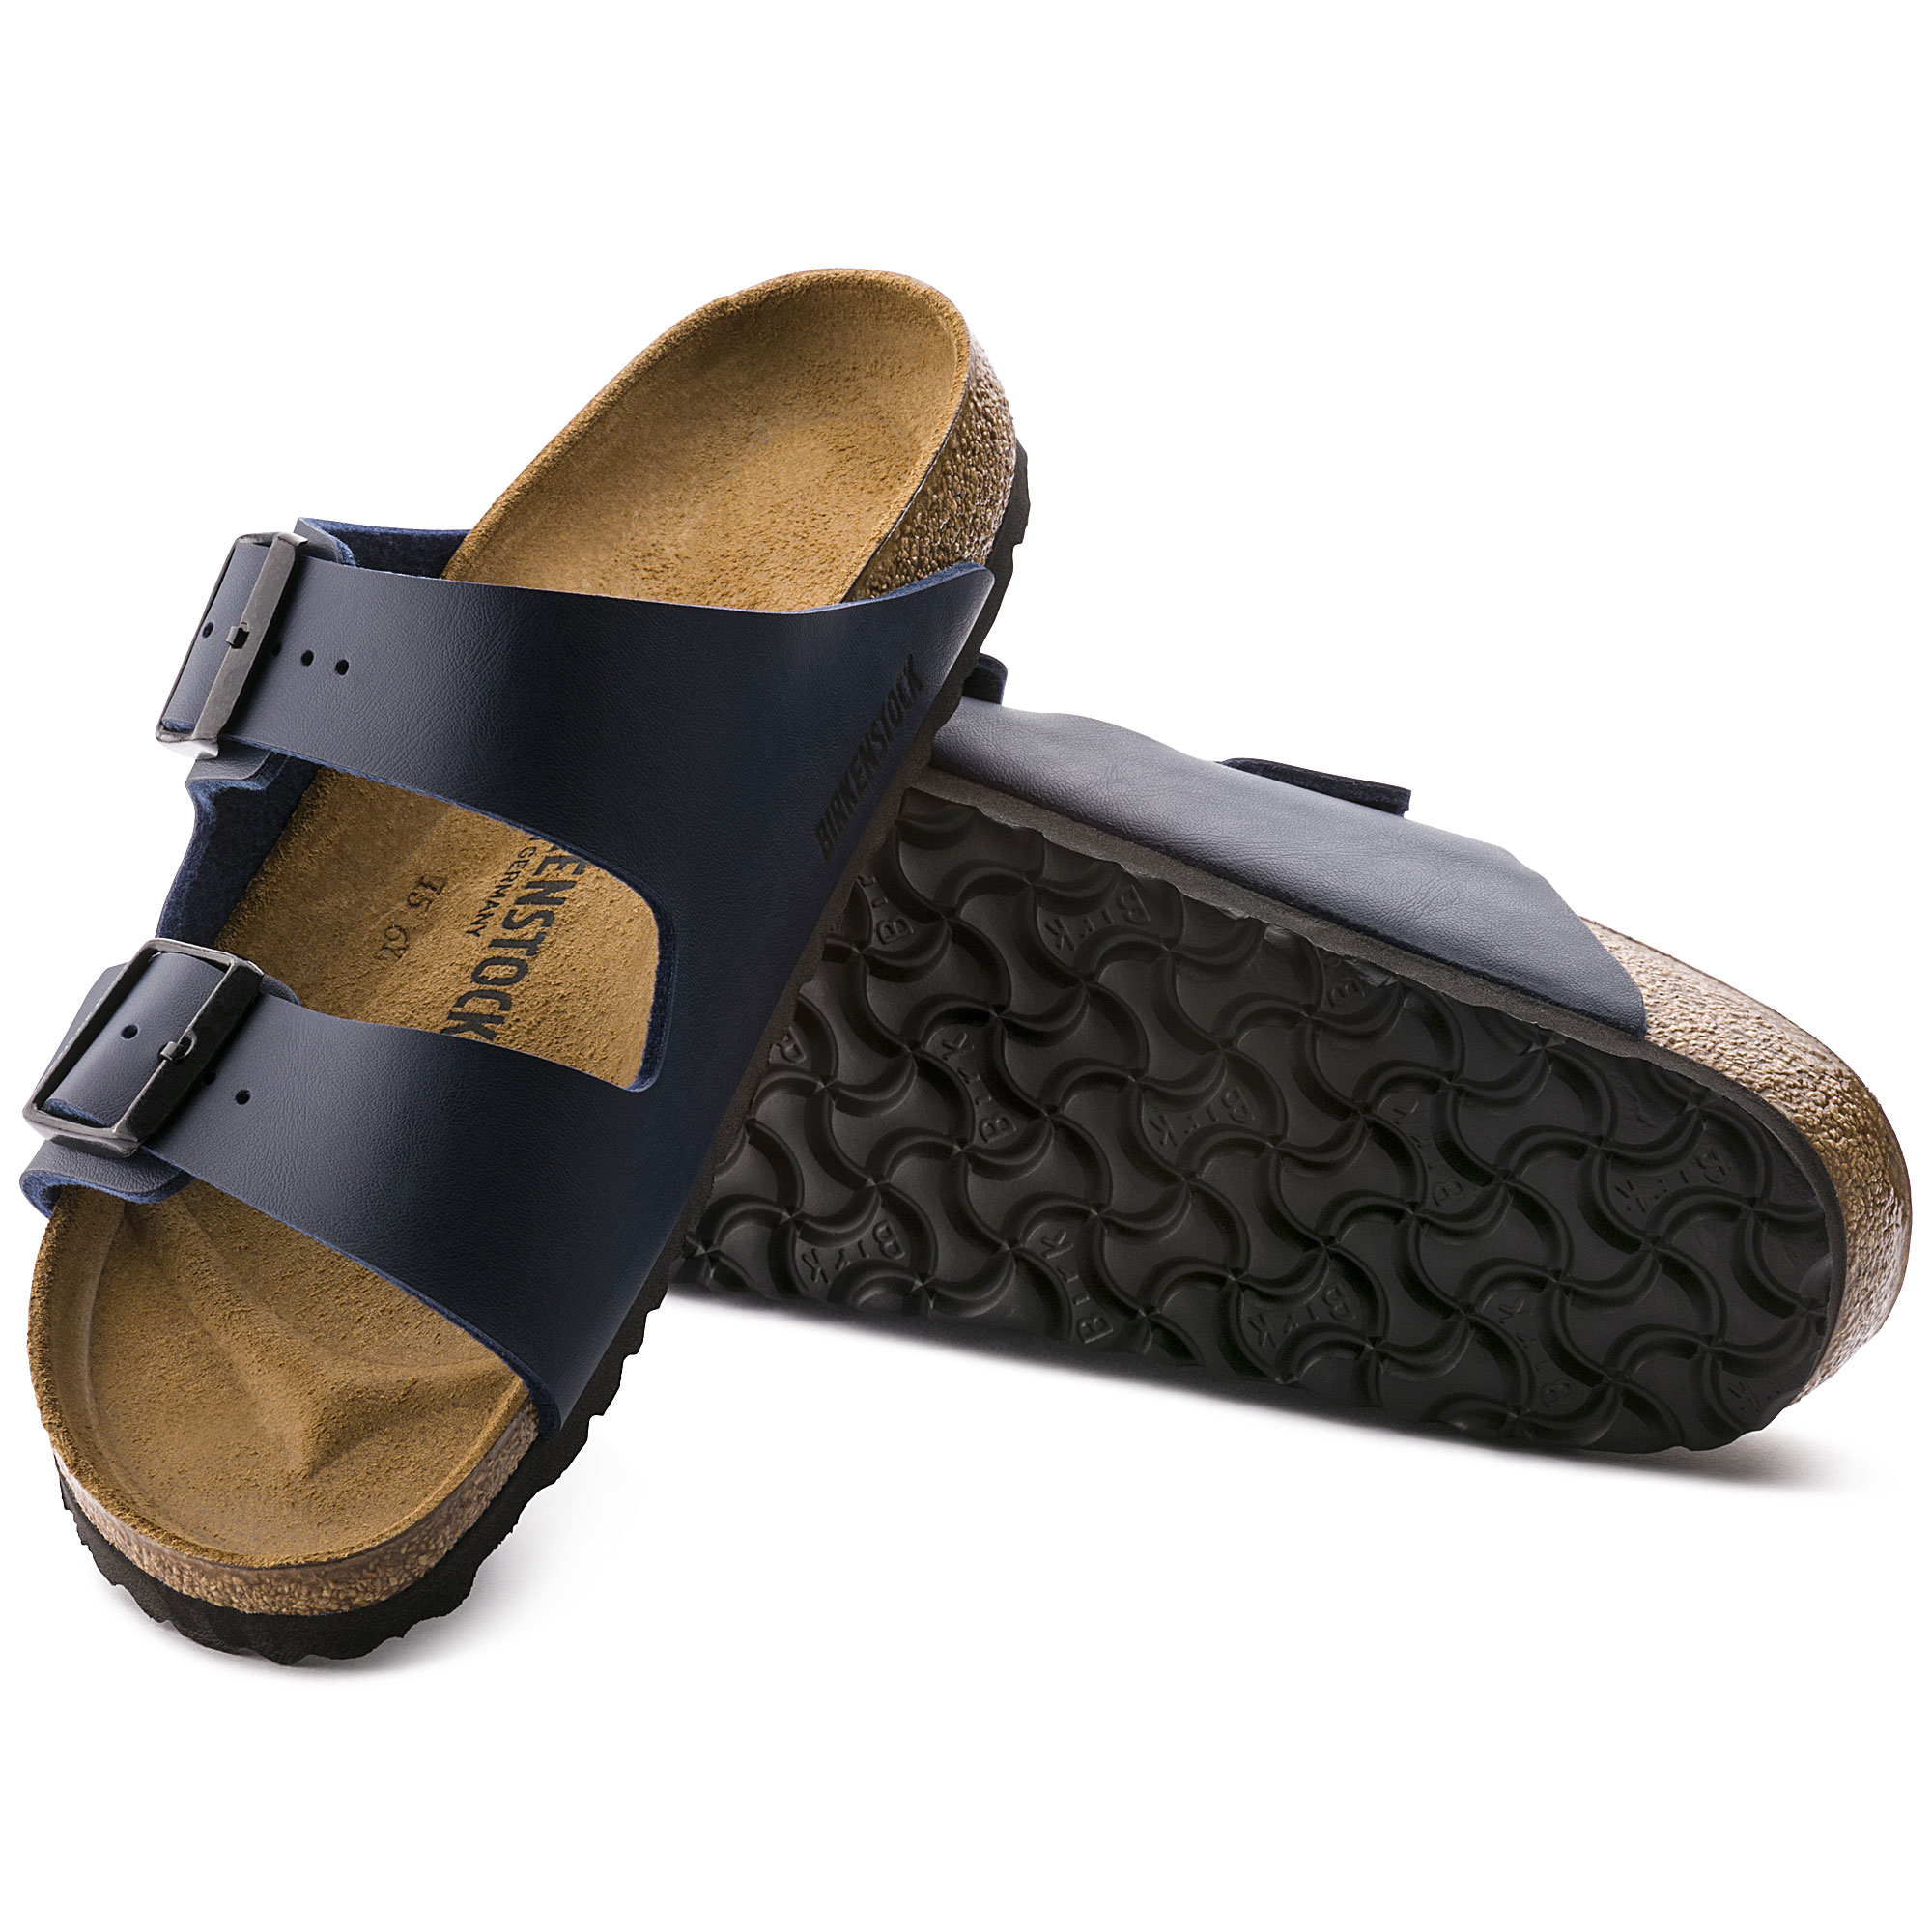 Men's Birkenstock Birko Flor Arizona Sandals